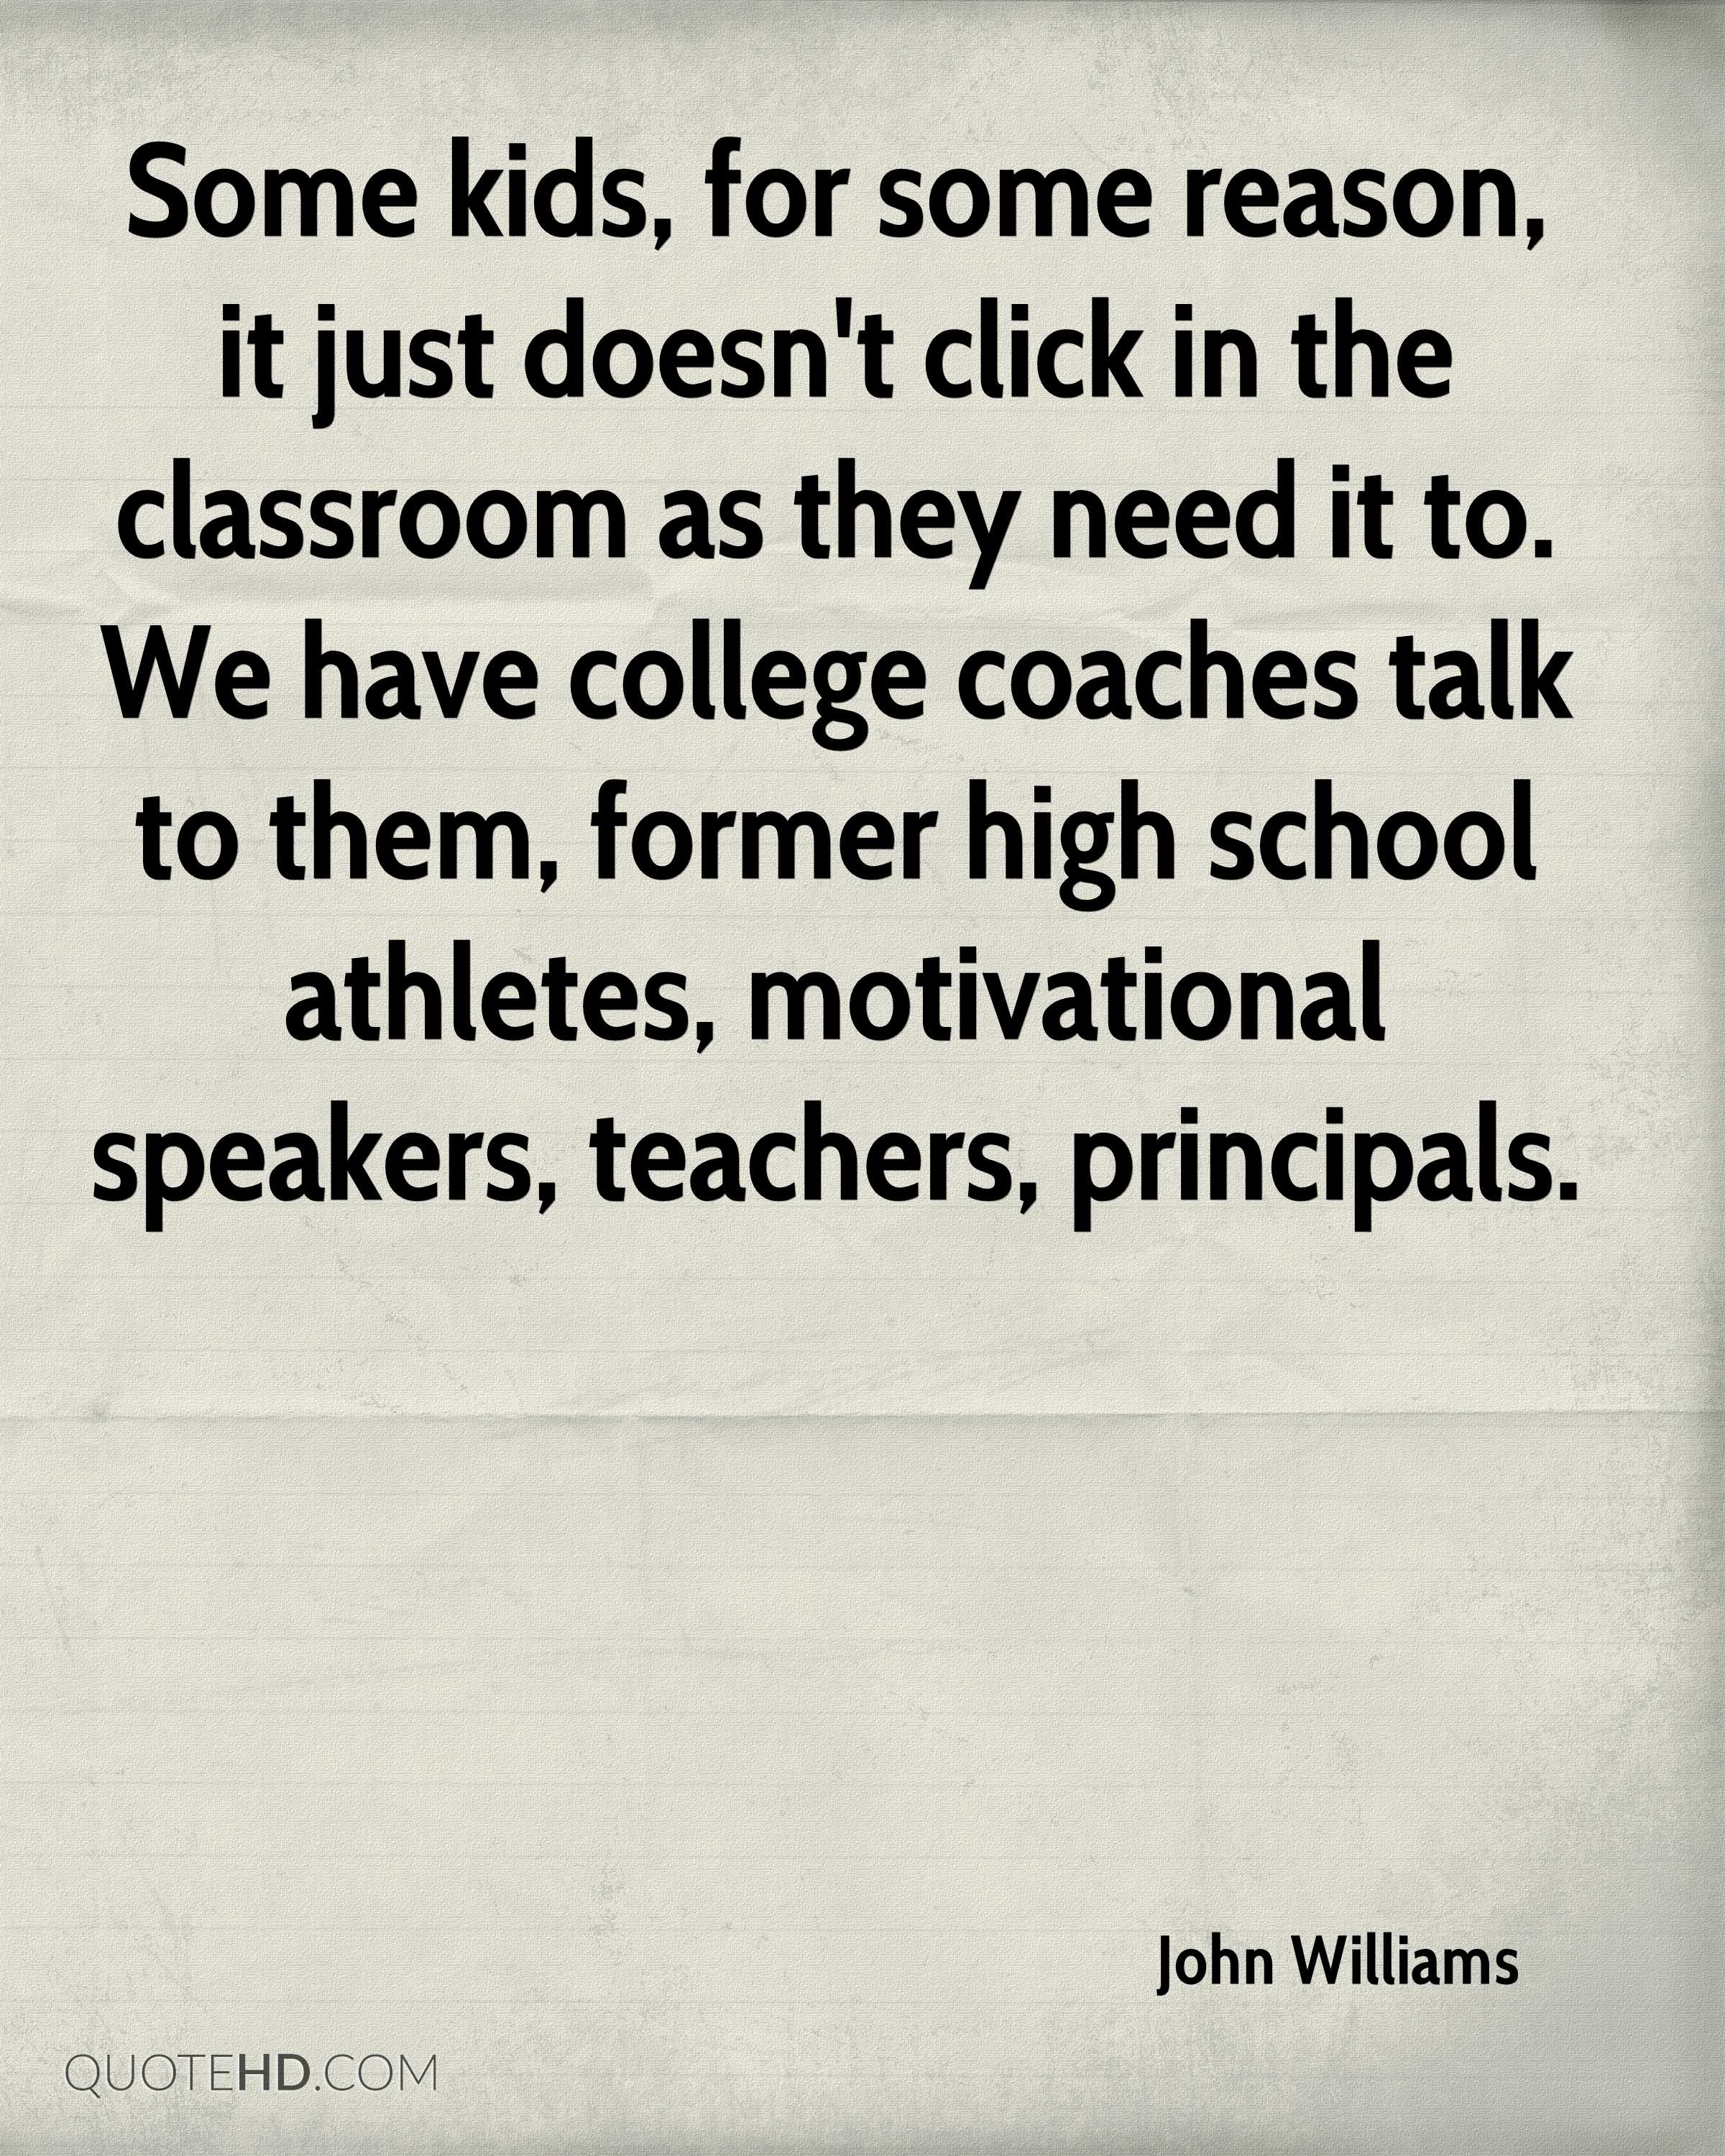 Some kids, for some reason, it just doesn't click in the classroom as they need it to. We have college coaches talk to them, former high school athletes, motivational speakers, teachers, principals.